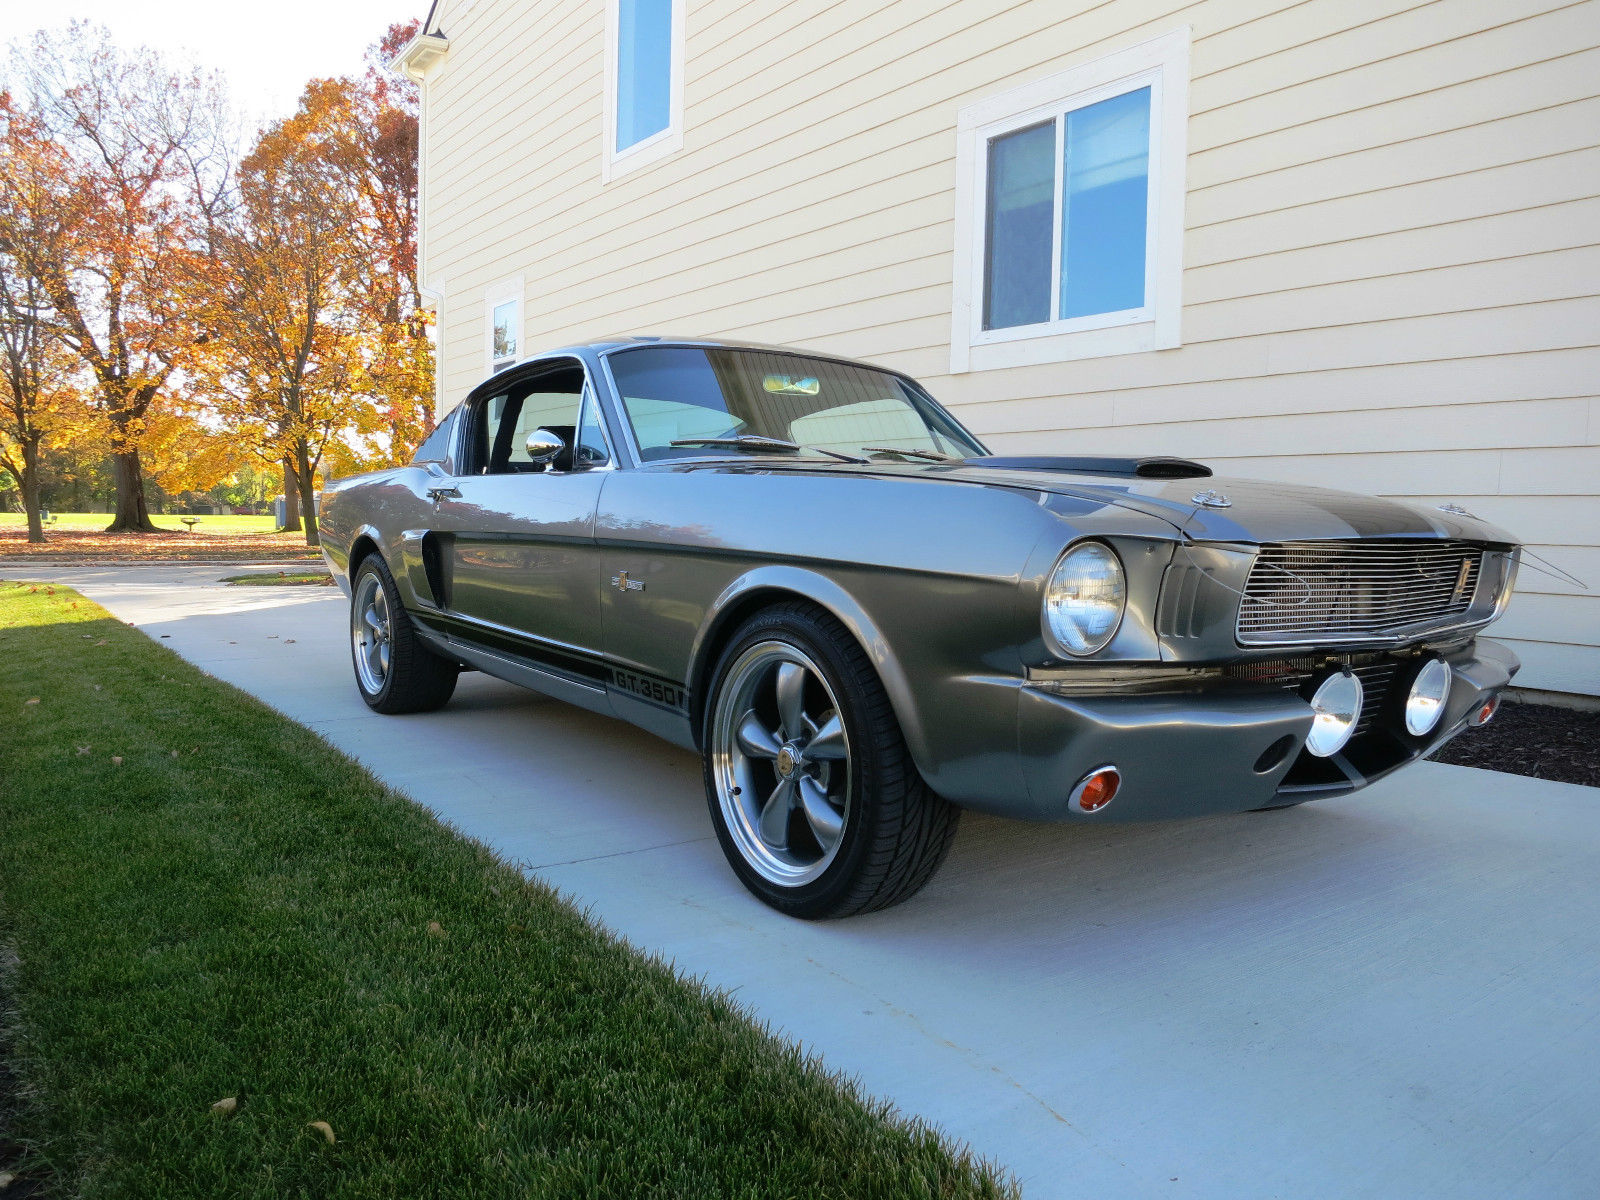 1965 Ford Mustang Shelby Gt 350 Tribute Restomod Pro